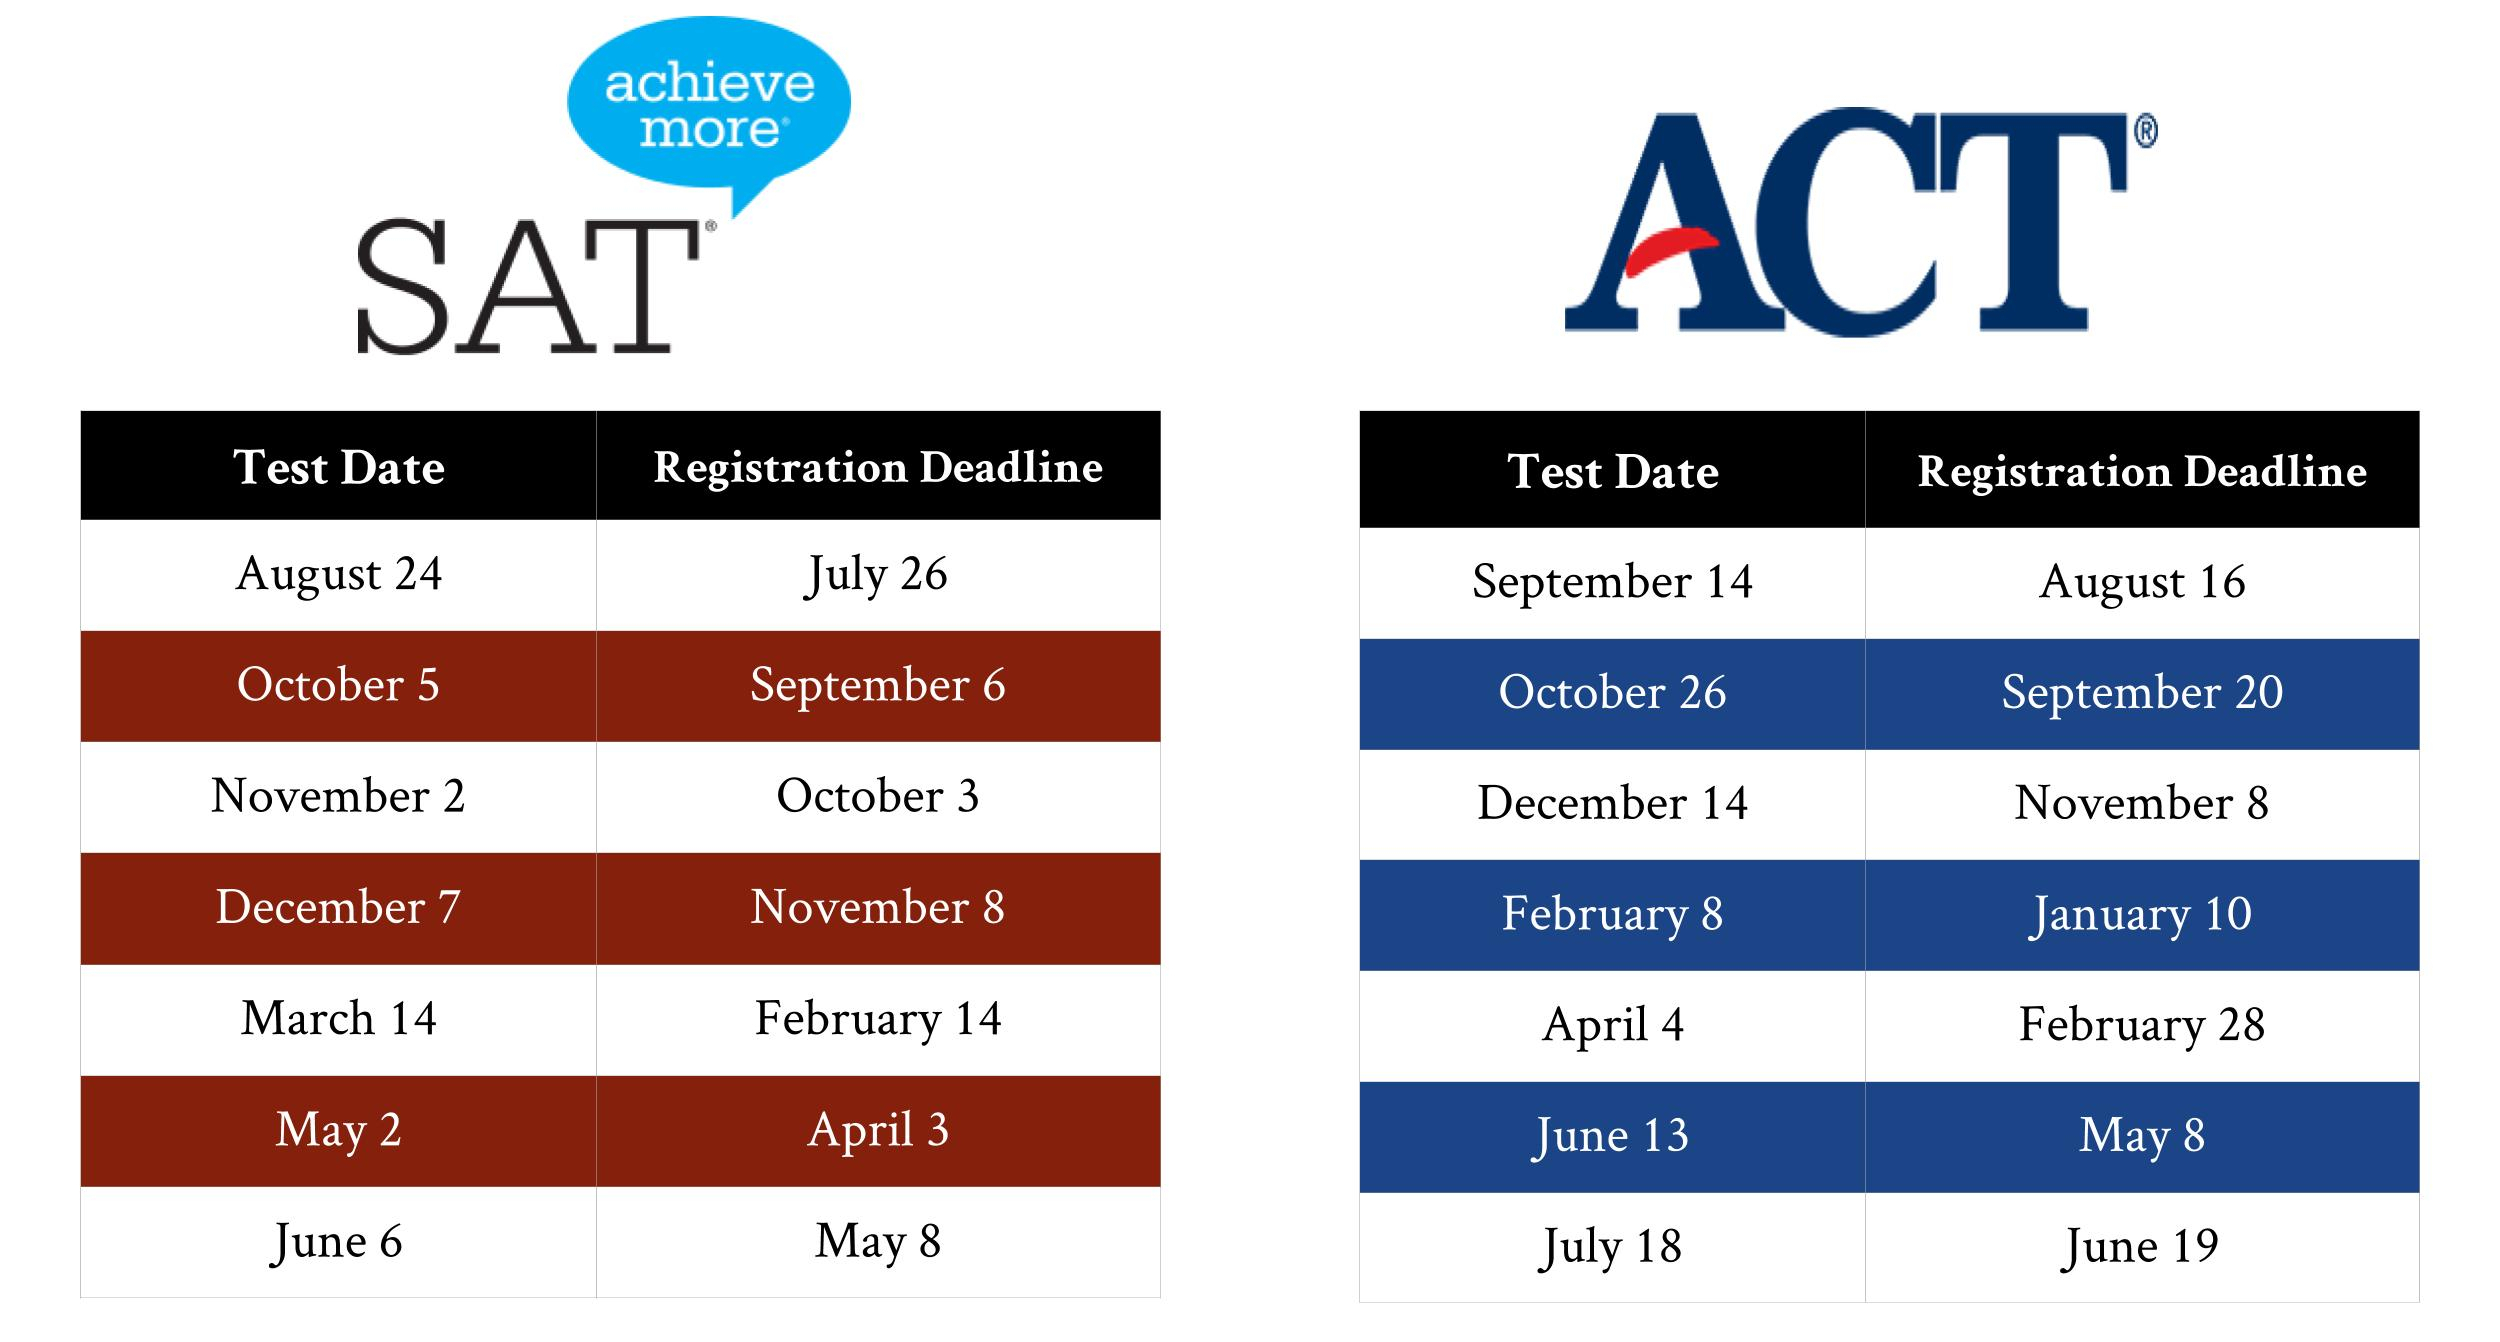 2019-20 Satact Test Dates   Academy College Coaches